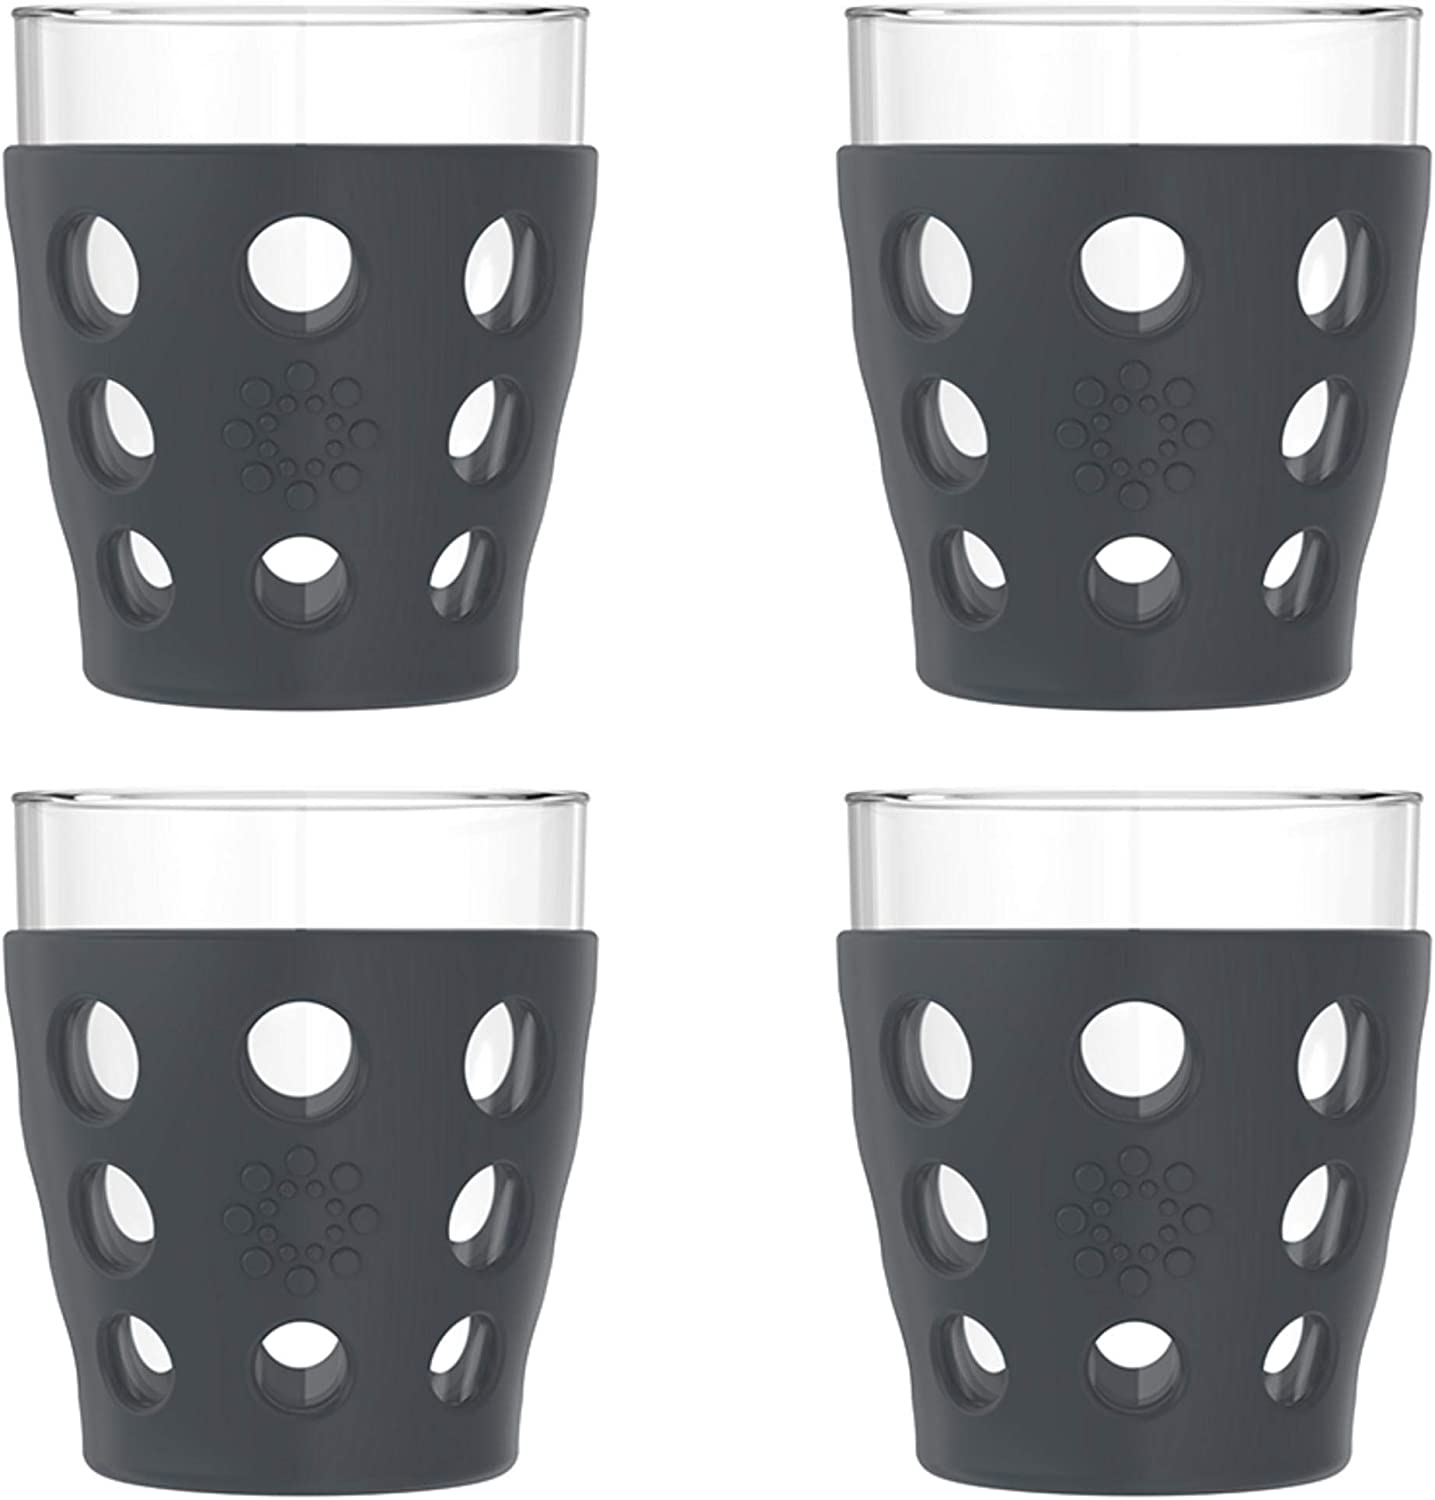 Lifefactory 10-Ounce BPA-Free Indoor/Outdoor Protective Silicone Sleeve Beverage Glass, 4-Pack, Carbon